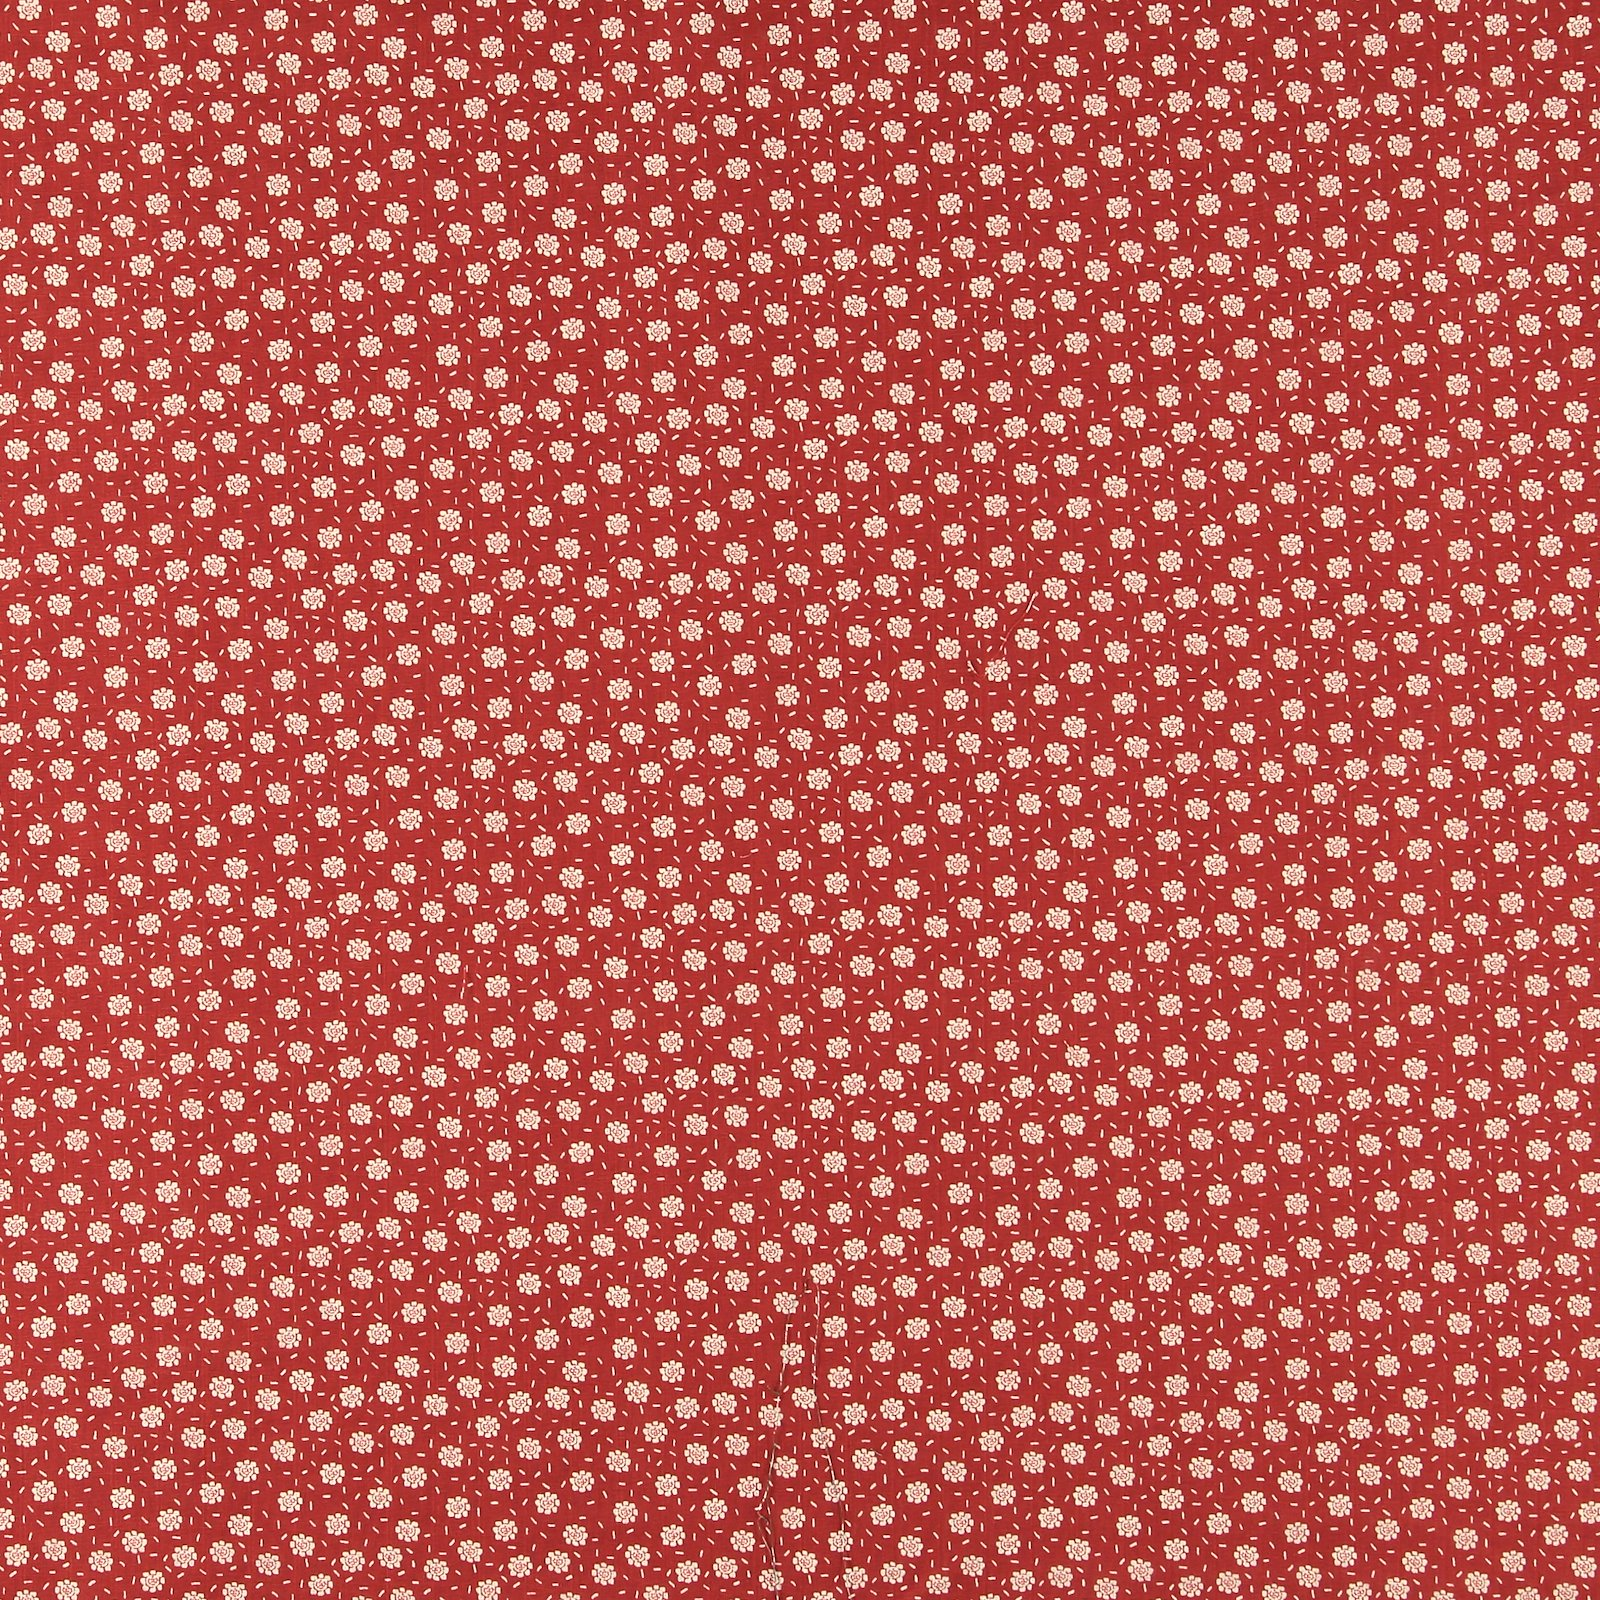 Muslin dusty red with petite flowers 501865_pack_sp